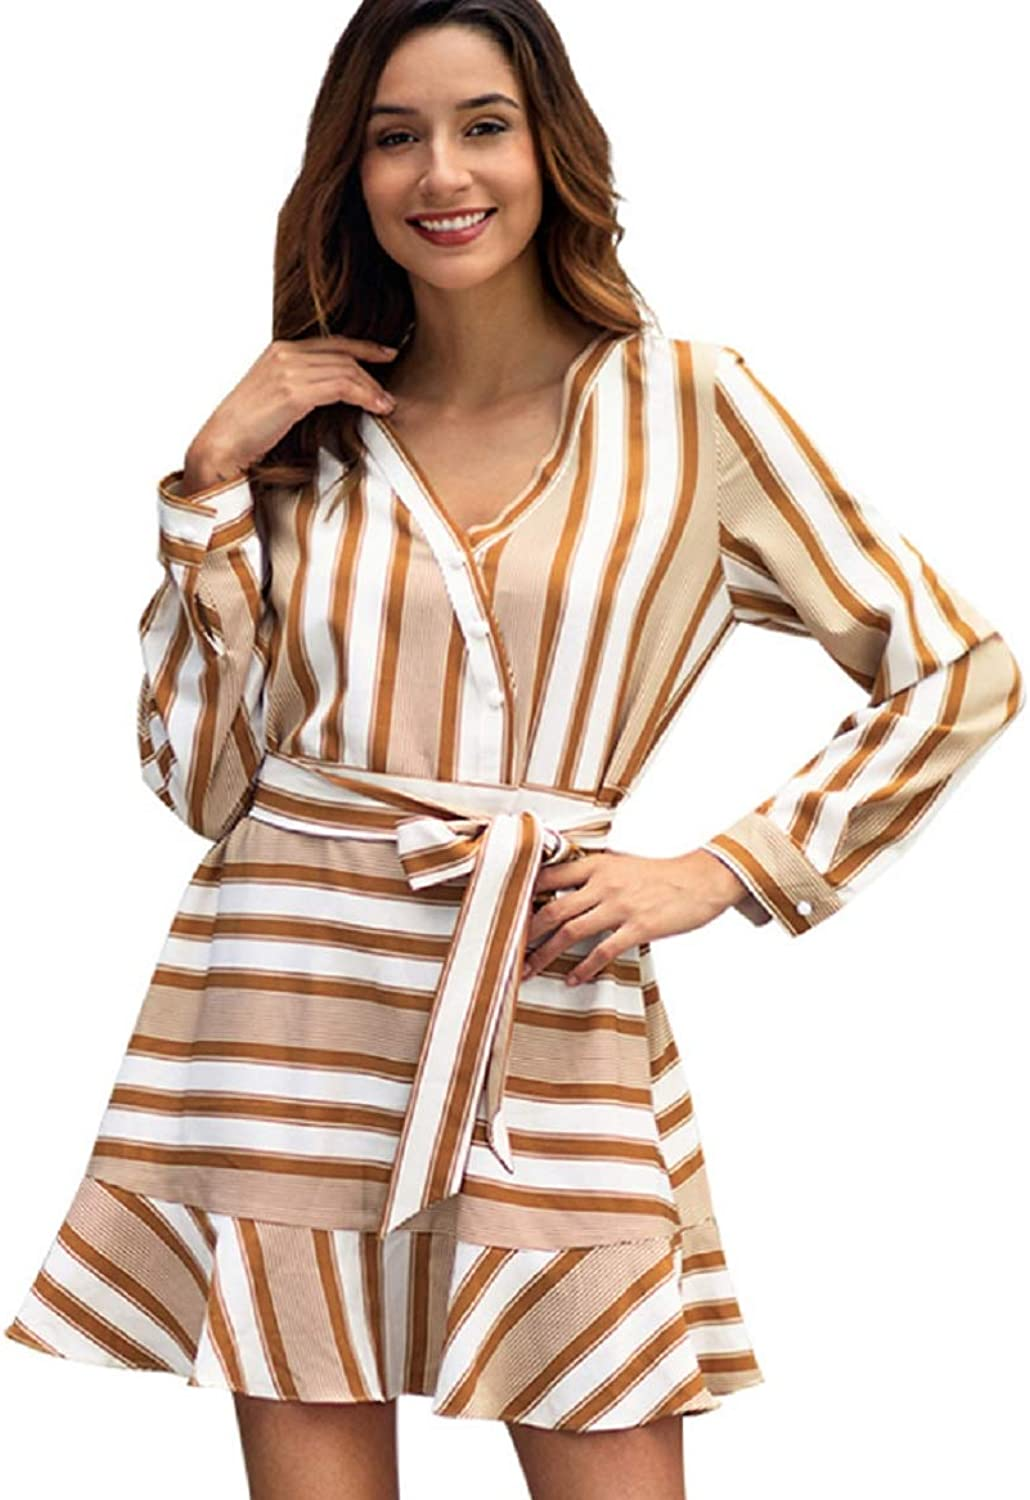 V Neck Stripe Long Sleeve Shirt Skirt Casual Beach Holiday Lace-up Women's Dress